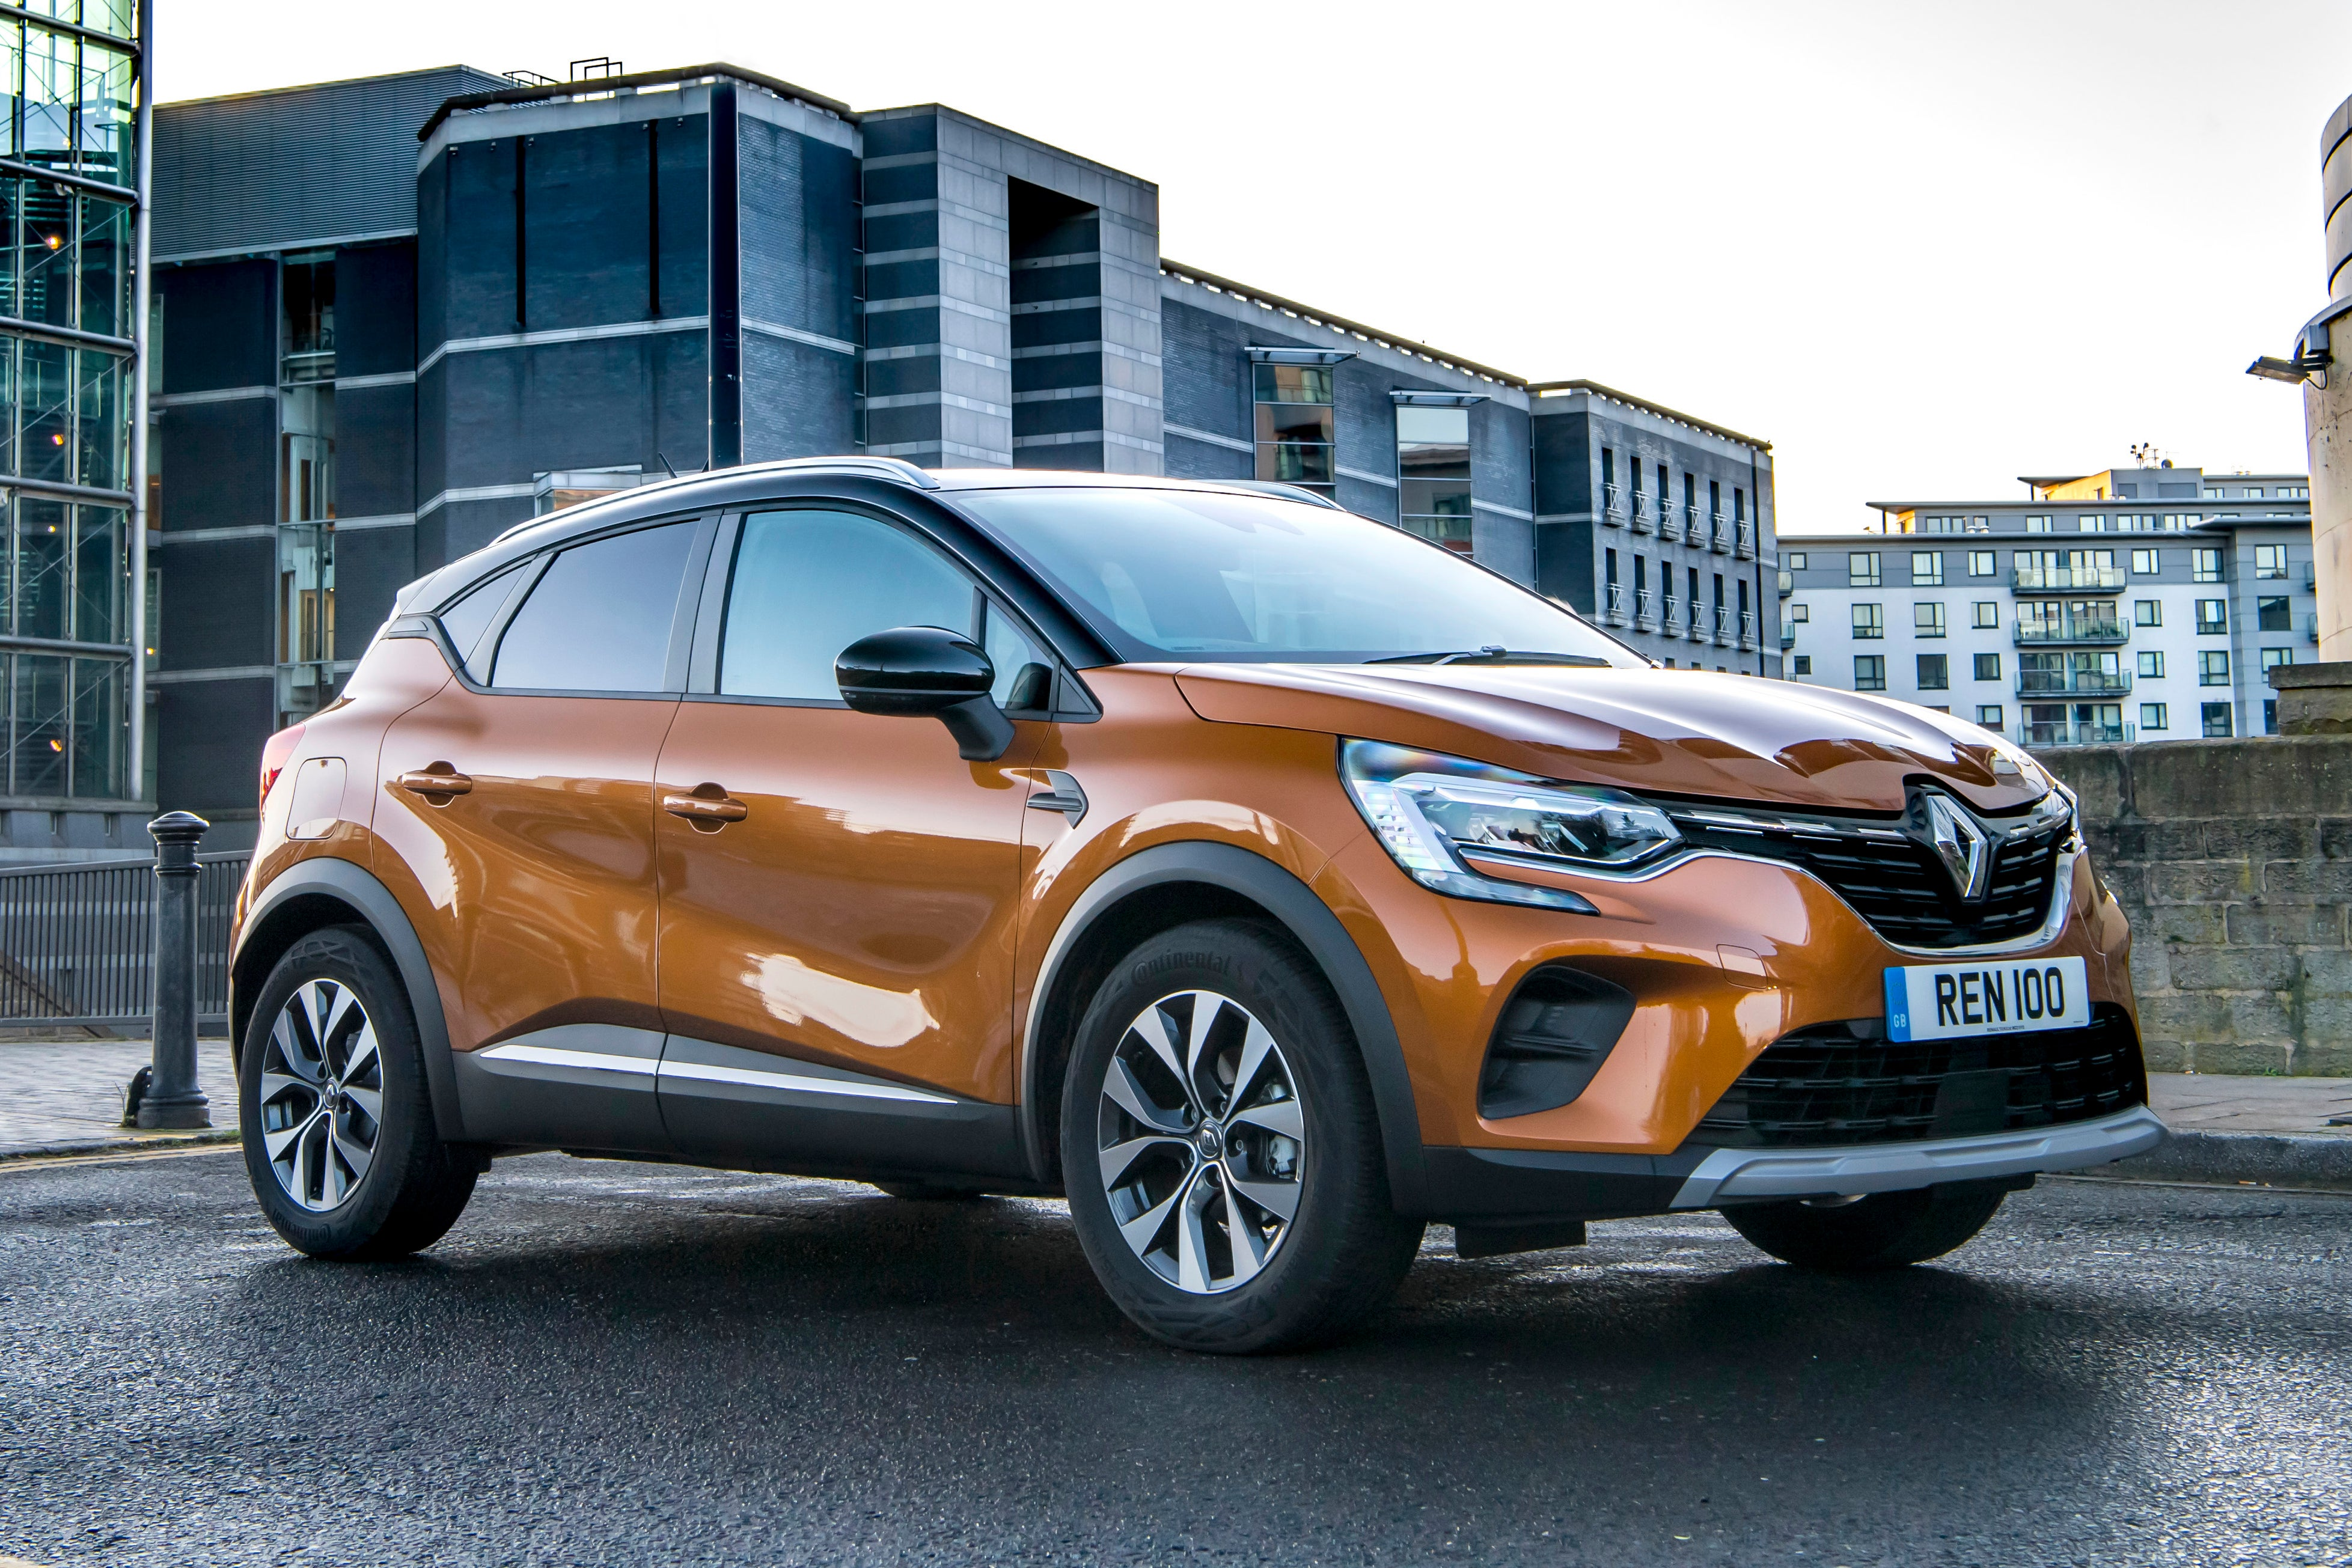 Renault Captur Right Side View